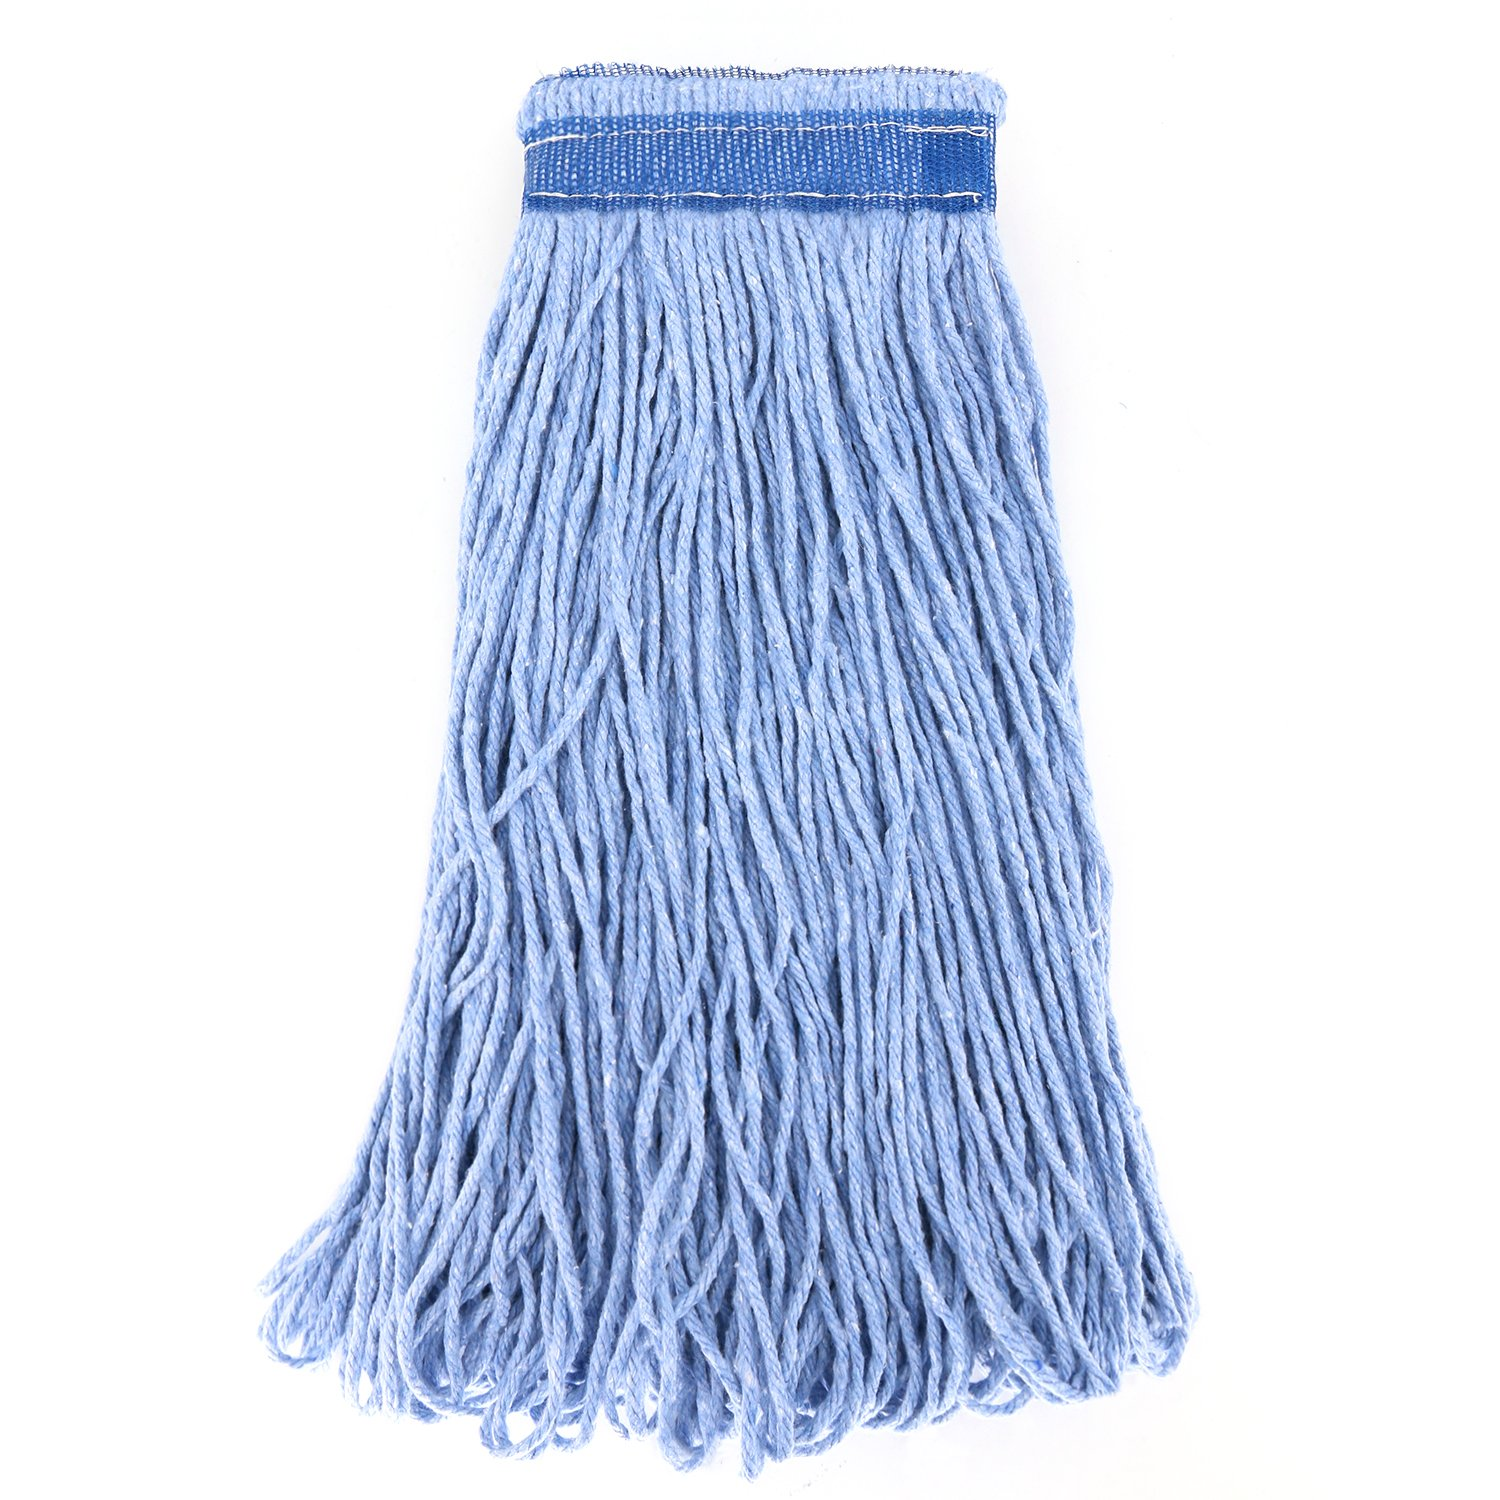 Bonison 24 oz Cotton Easy Wring Saddle Mop Head Refill, 24 oz Heavy Duty Looped-End String Swinger Style Replacement Mop Head, for Home, Commercial, and Industrial Use (Blue, 24 oz) by Bonison (Image #2)